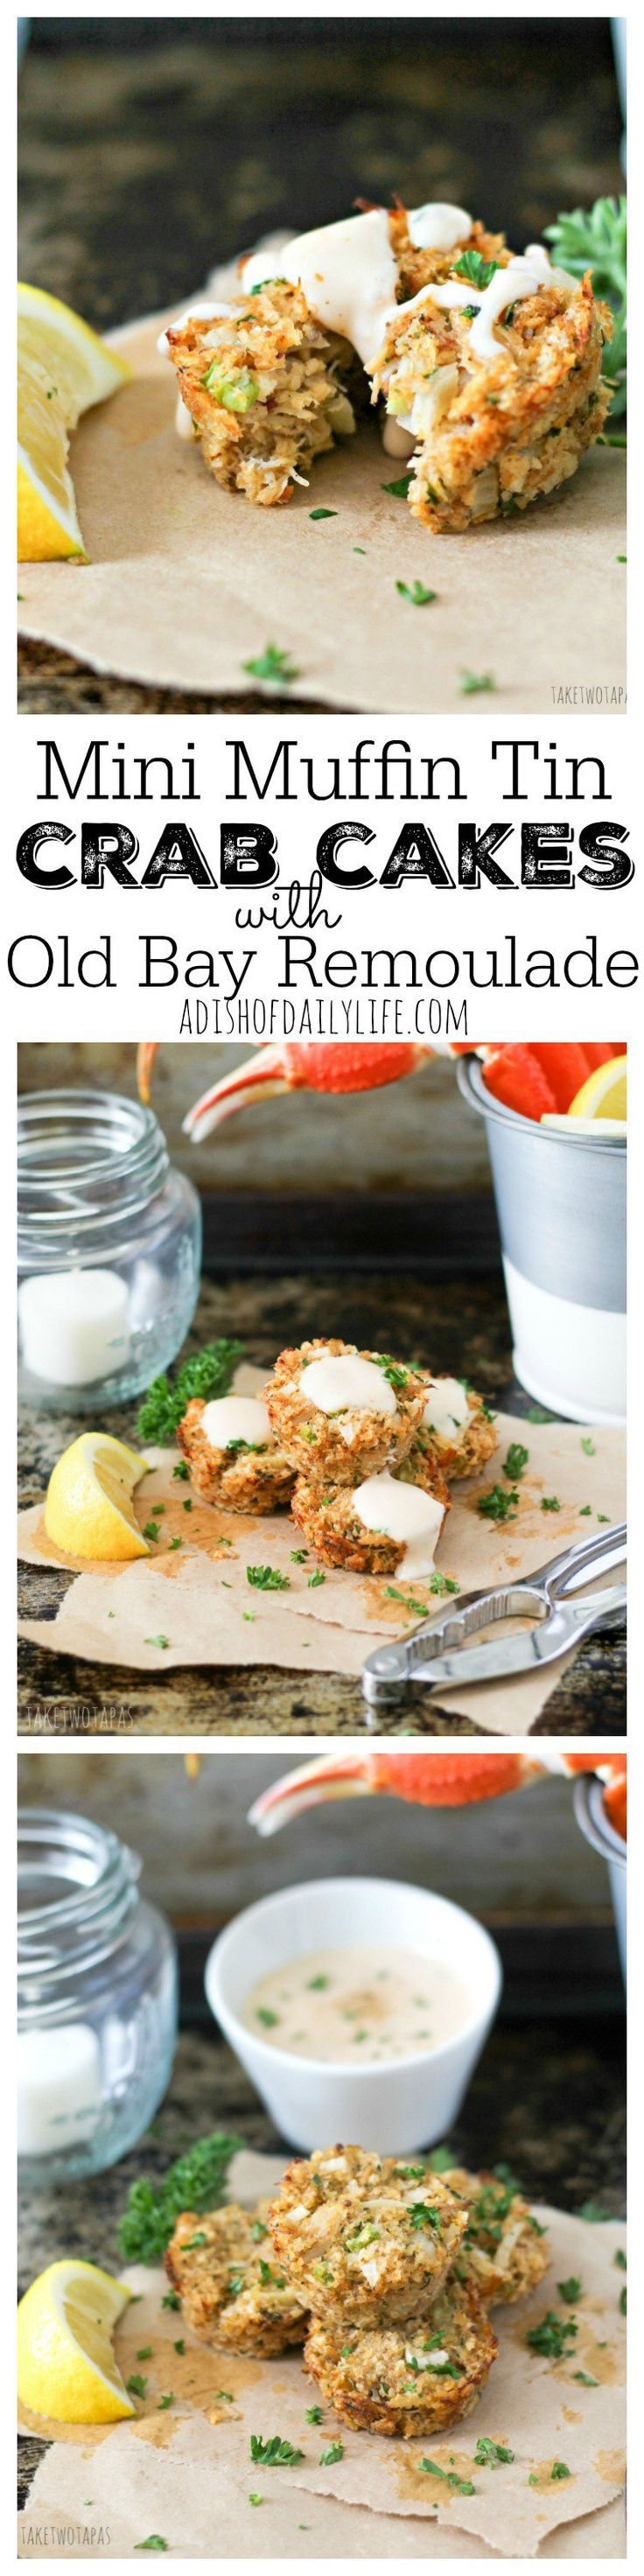 Crab cakes are a great appetizer or main dish for dinner! This Muffin Tin Crab Cakes recipe is full of lump crab meat and have the right amount of spice! Drizzle with Old Bay Remoulade for a treat that will take you to the sea!